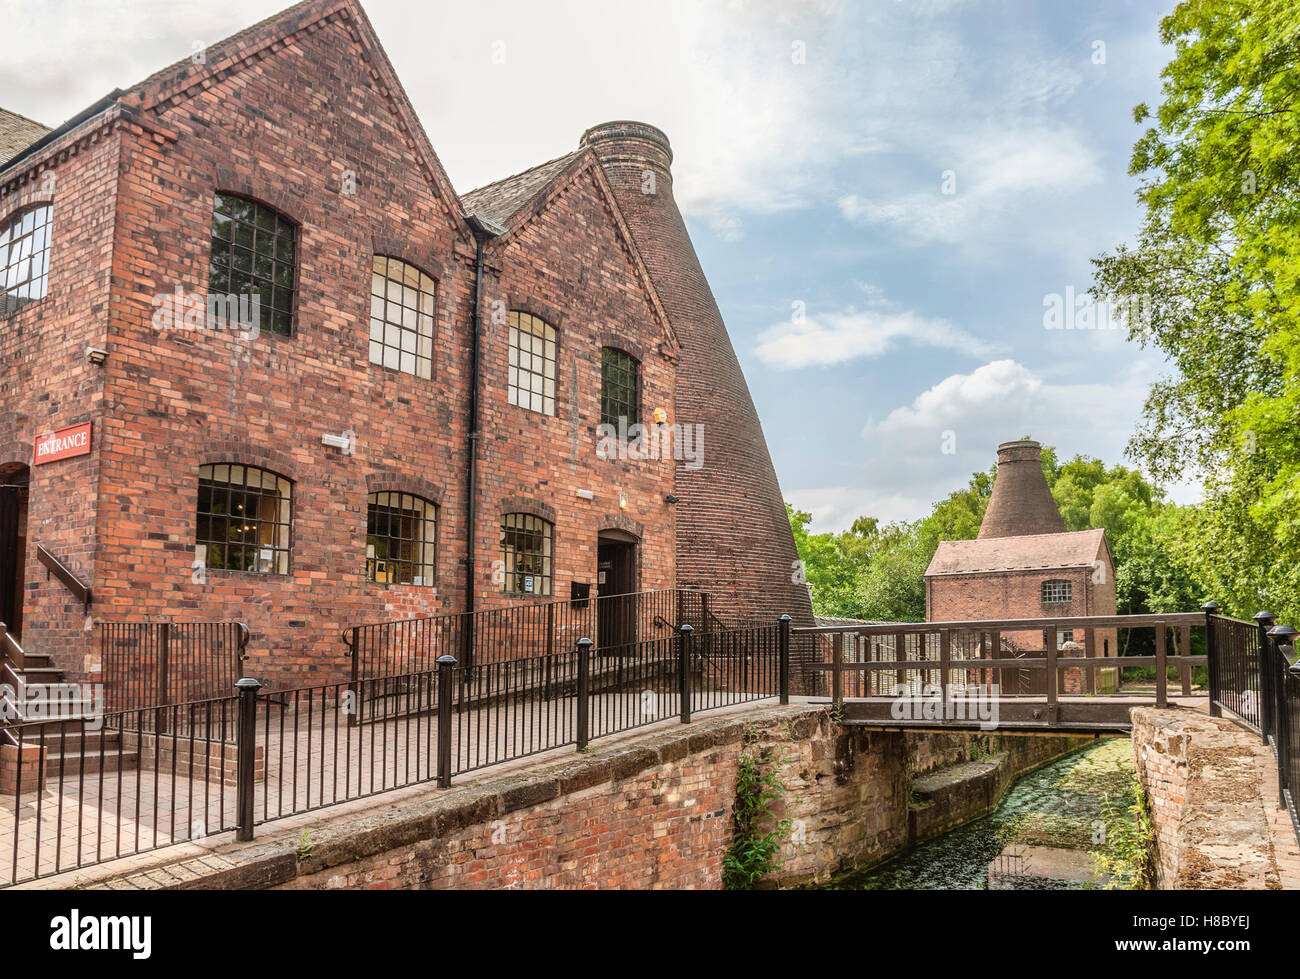 The Coalport China Museum is one of the Ironbridge Gorge Museums based in the village of Coalport within the Ironbridge - Stock Image